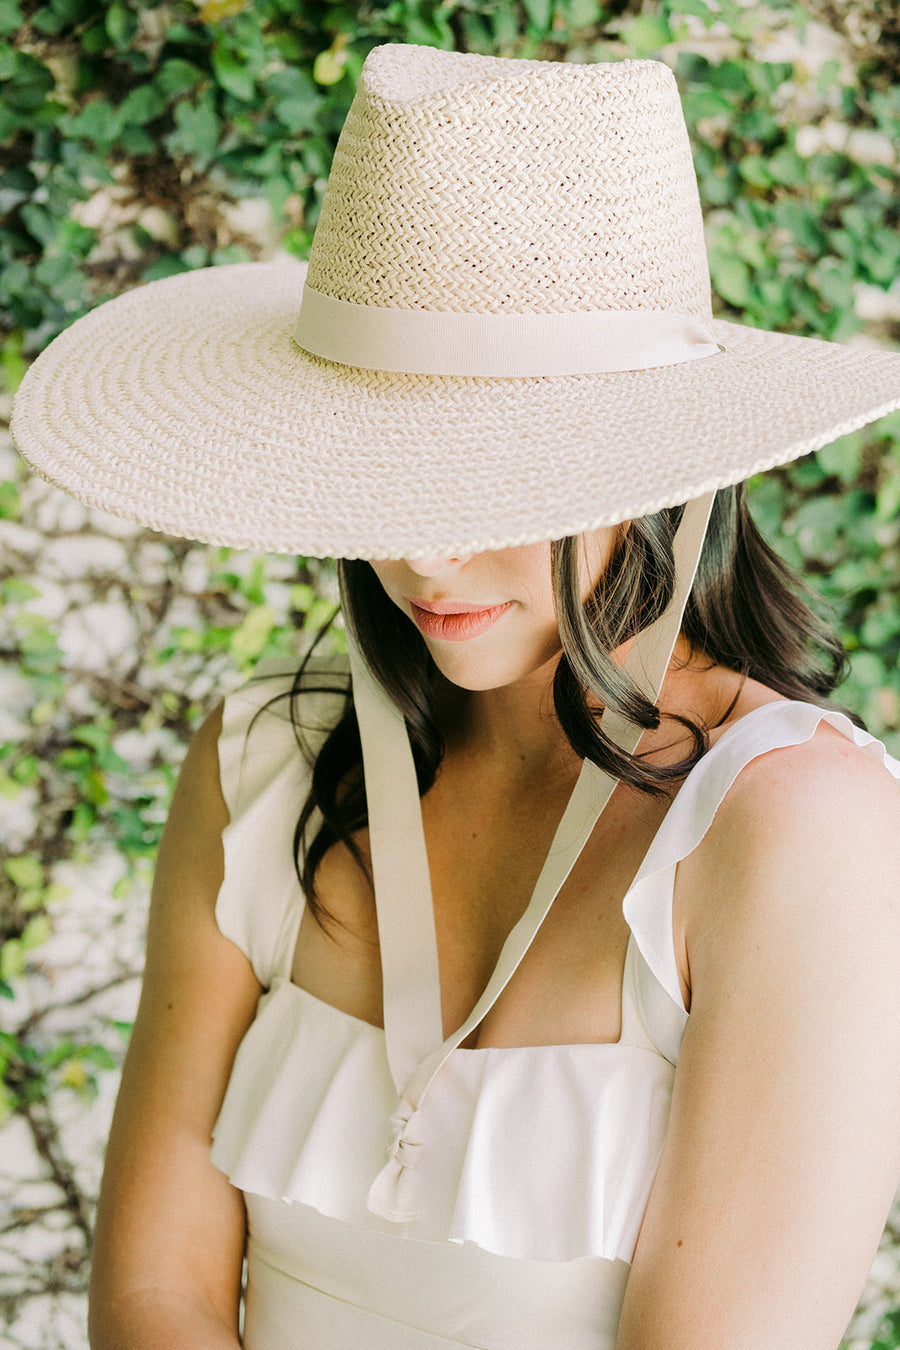 Chinstrap Jules Sunhat with White Ribbon - The Beach Bride by Chic Parisien, a destination for beach weddings, bachelorettes and honeymoons